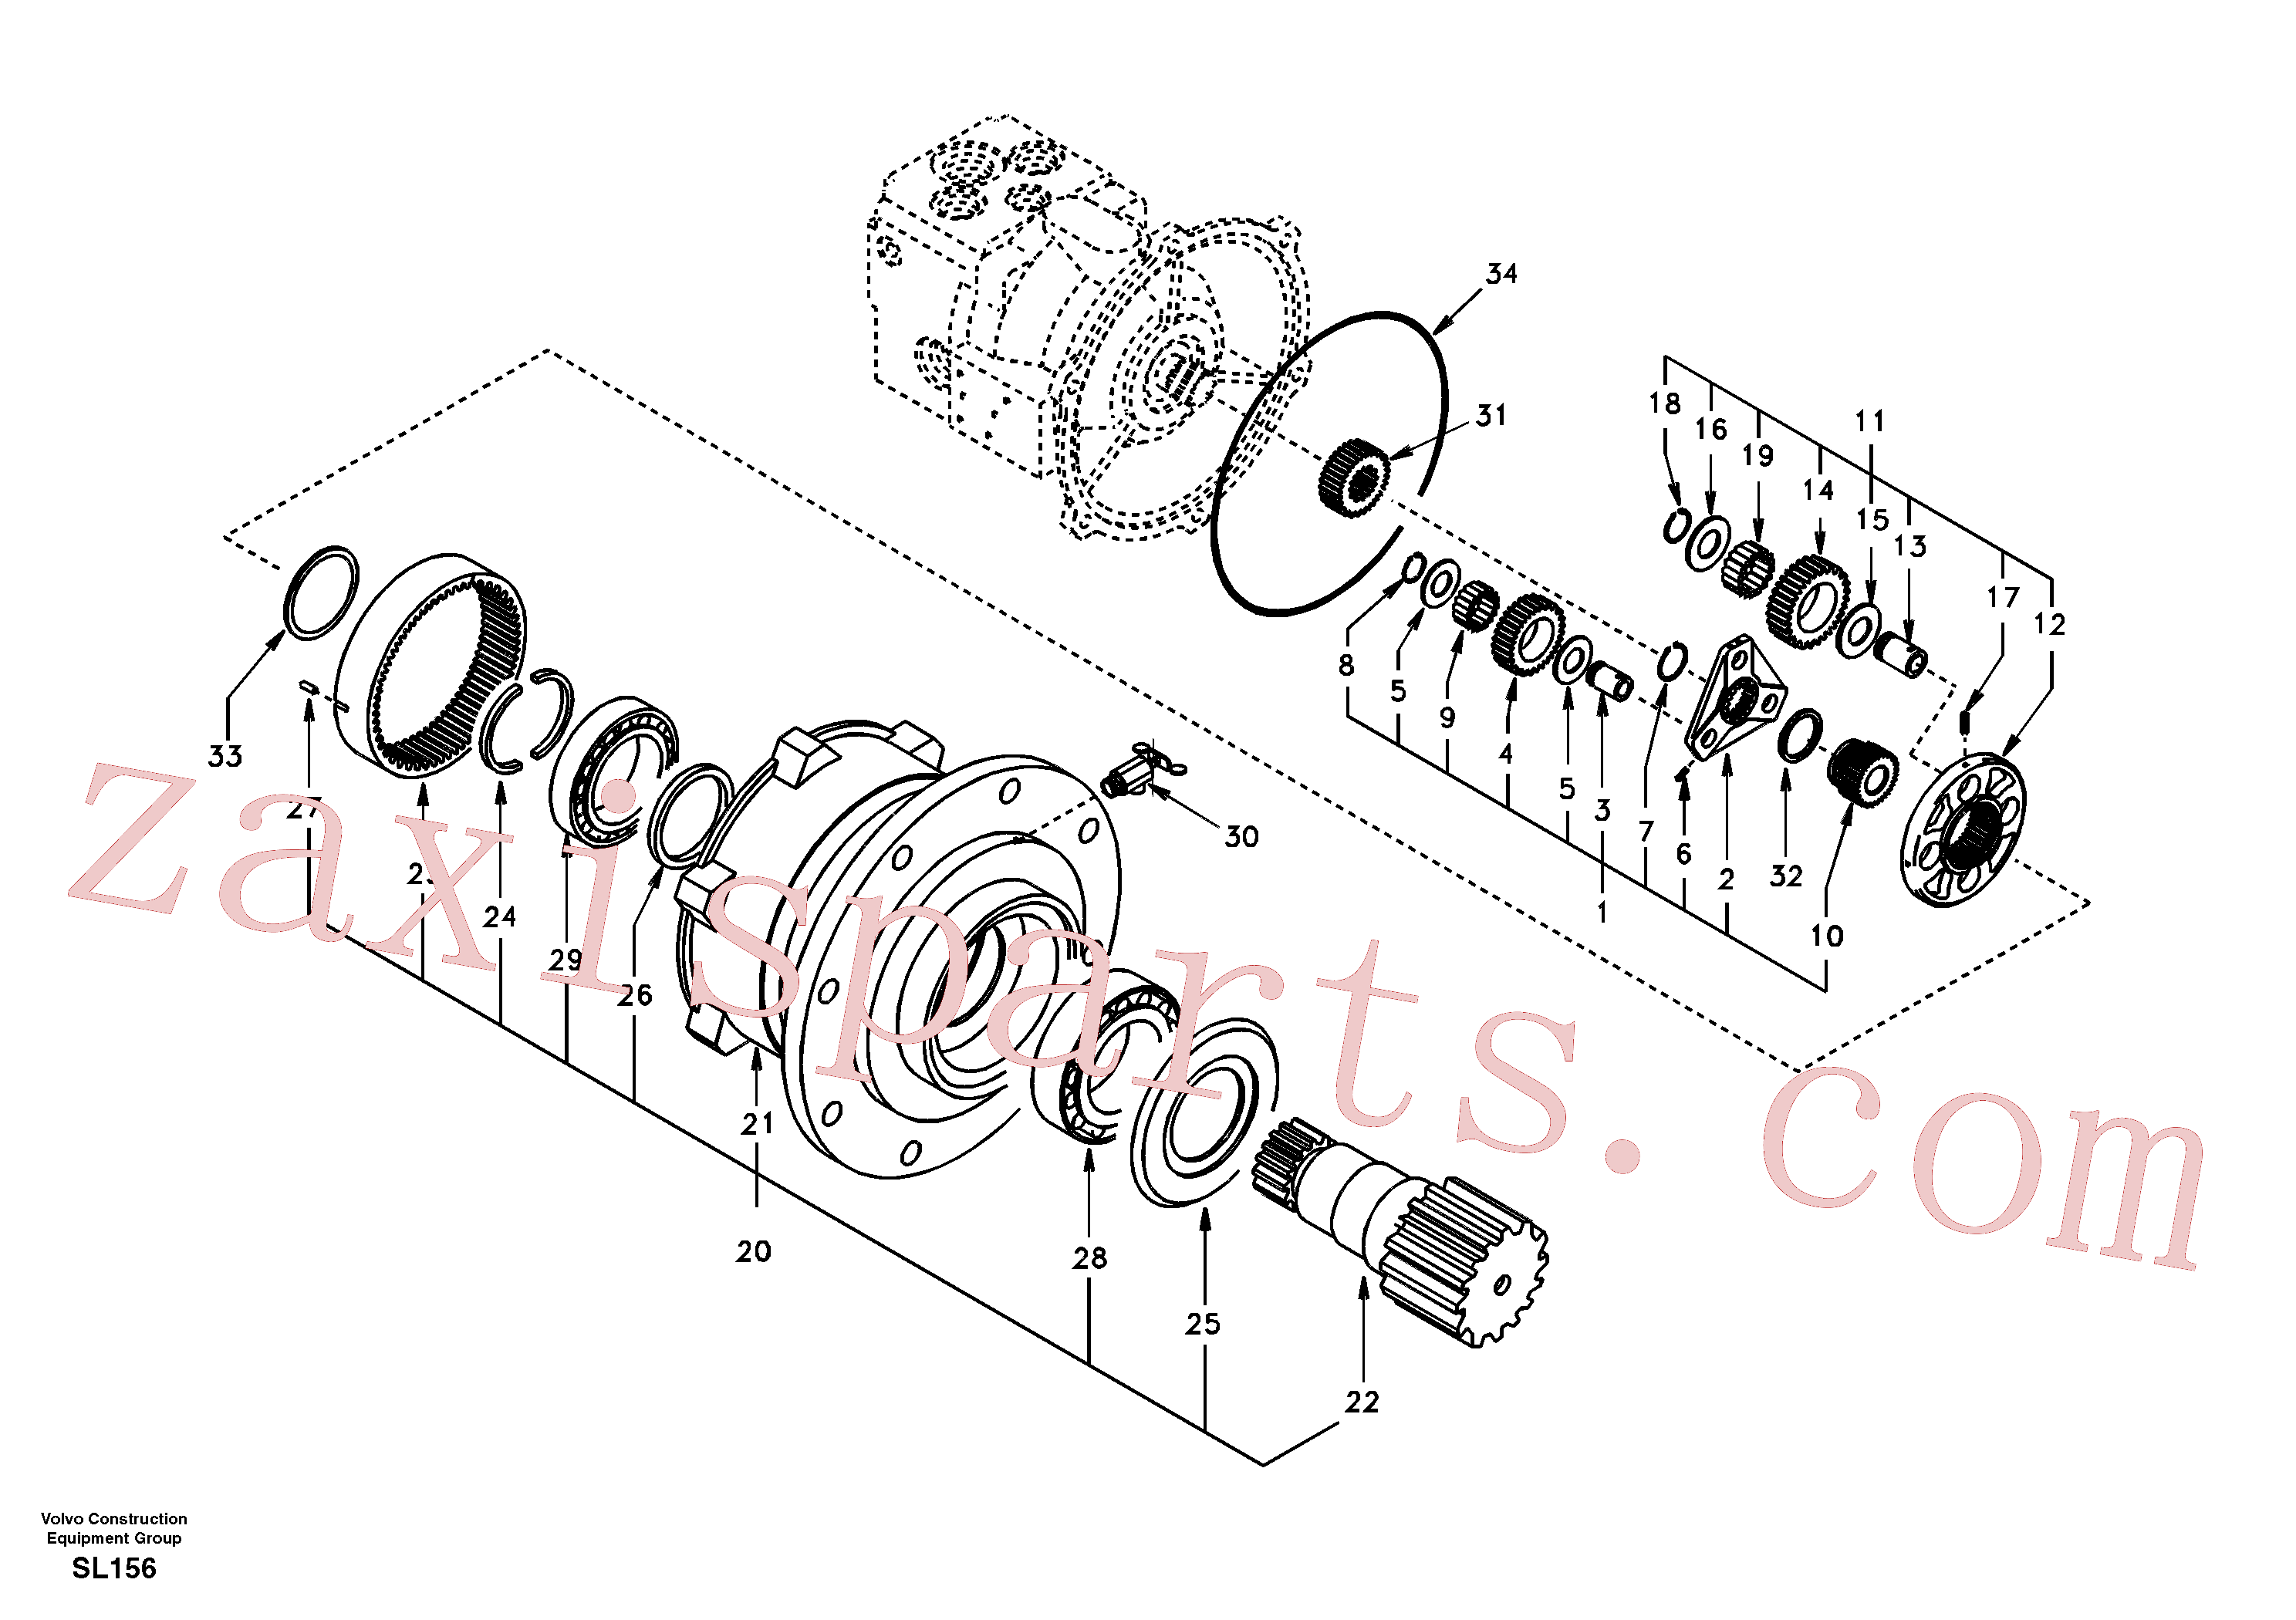 SA14504976 for Volvo Swing gearbox(SL156 assembly)